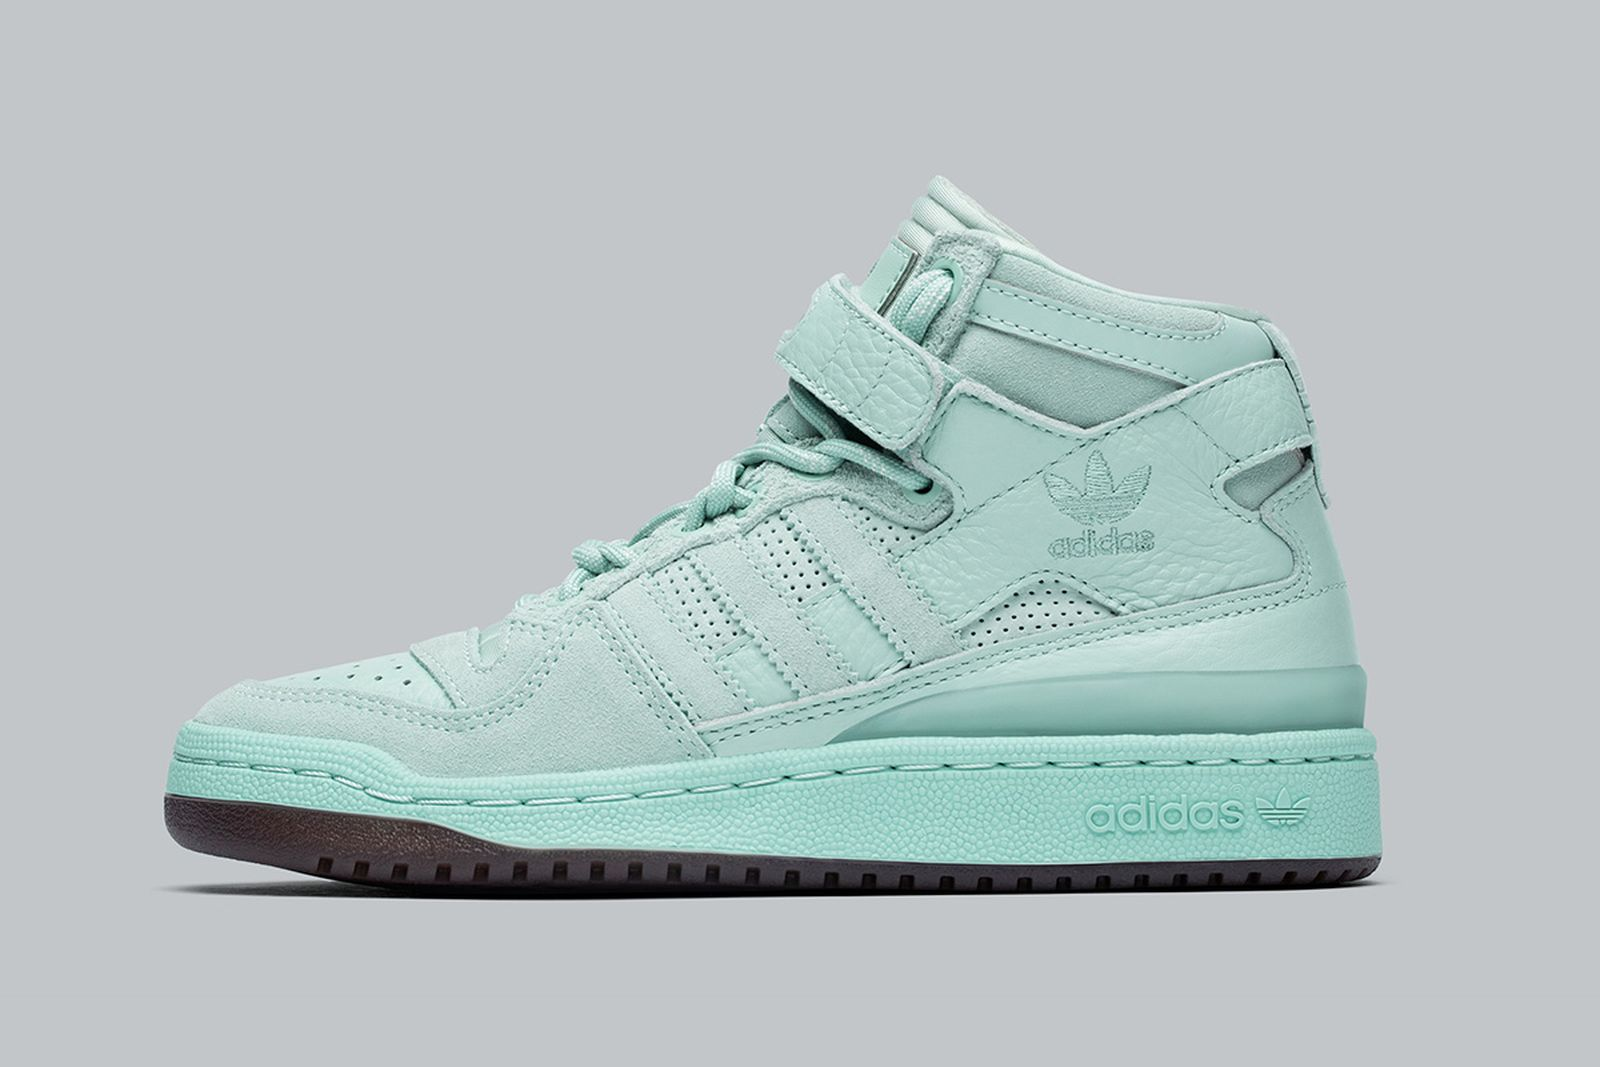 Beyonc 233 X Adidas X Ivy Park Forum Mid Where To Buy Tomorrow